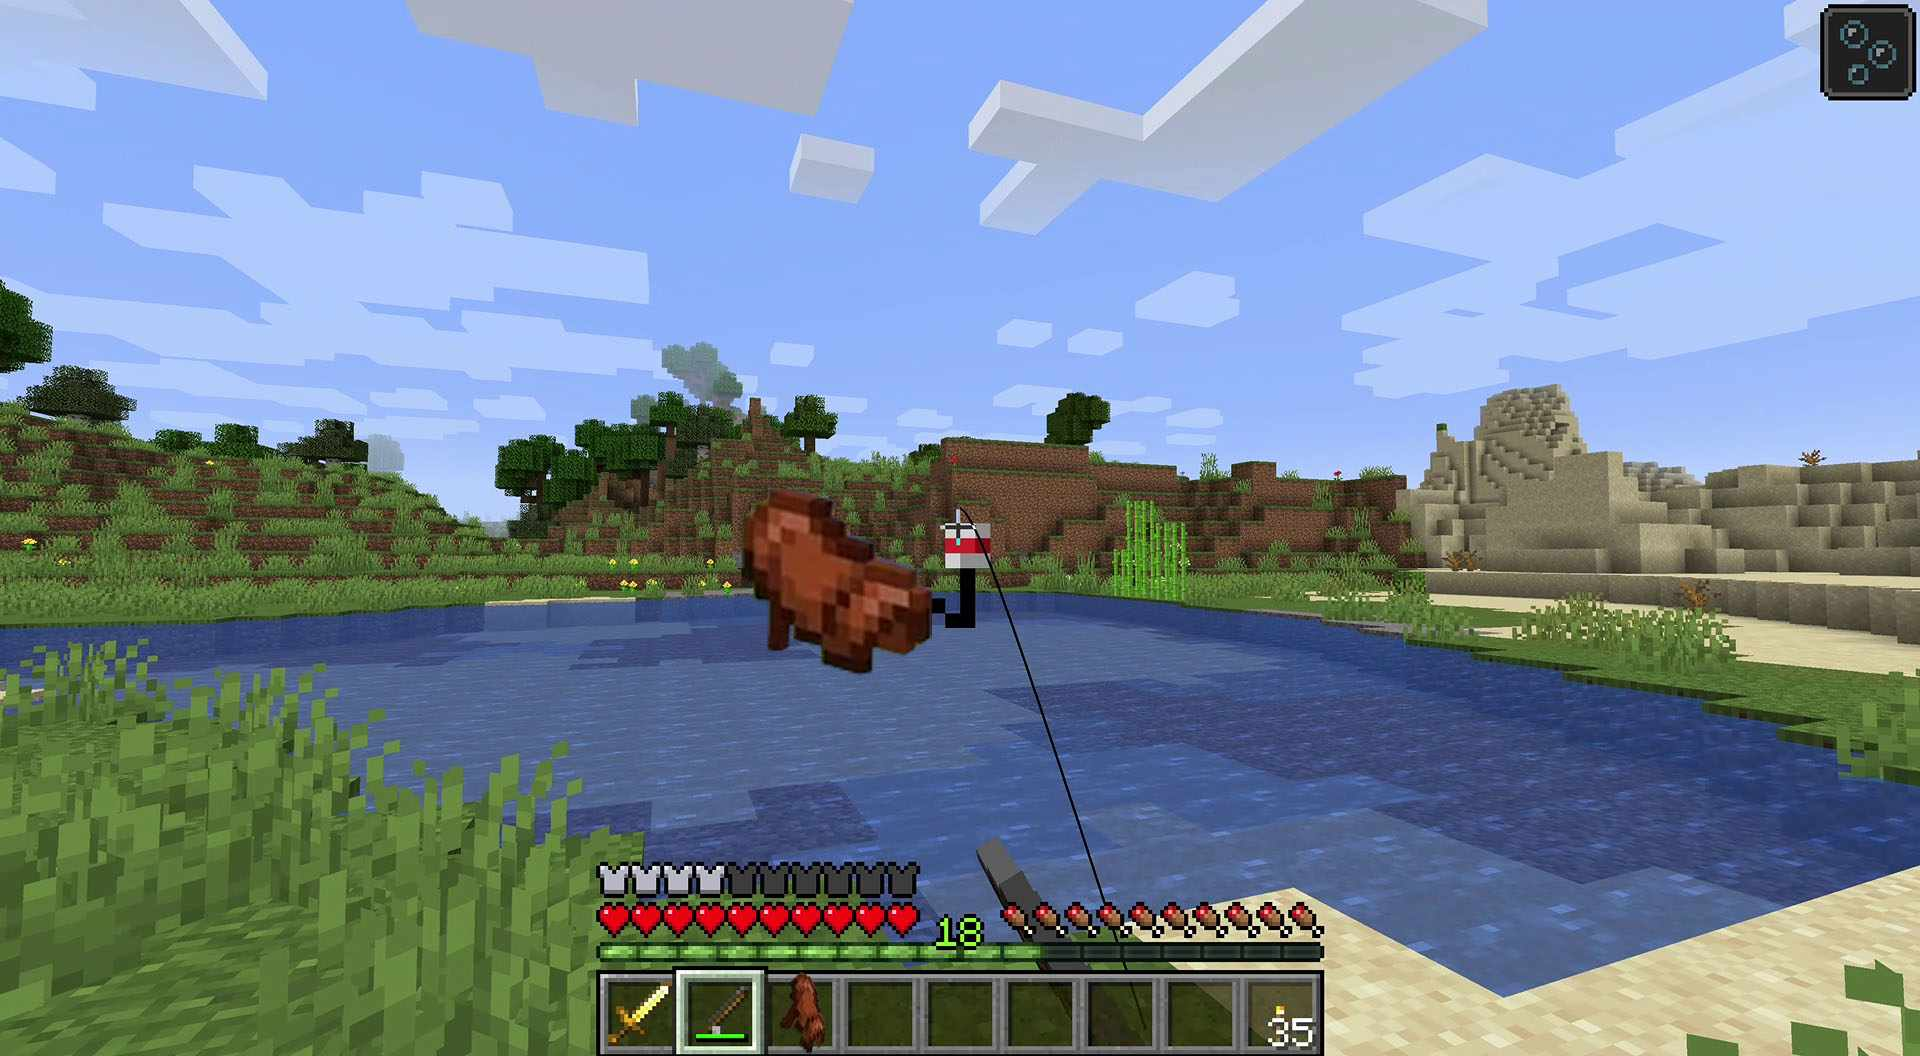 Catching a saddle in Minecraft.